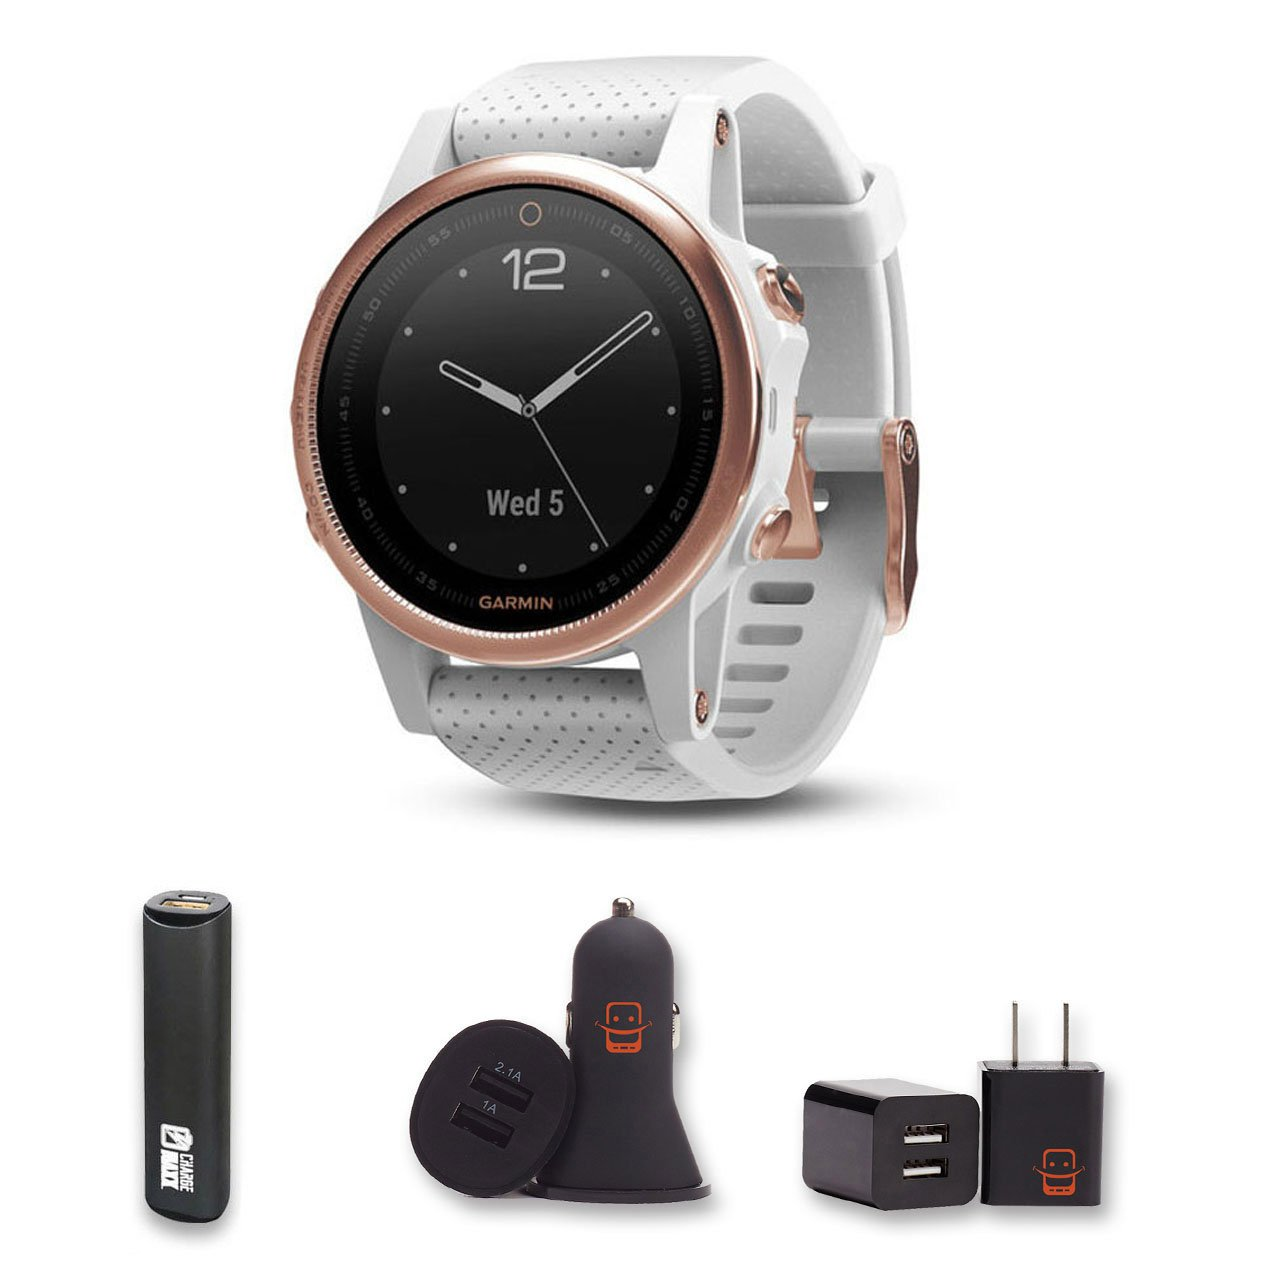 Garmin Fenix 5S - Sapphire, (Rose Gold/White Band) Bundle with PowerBank + USB Car Charger + USB Wall Charger (4 Items) by E Zee Electronics (Image #1)